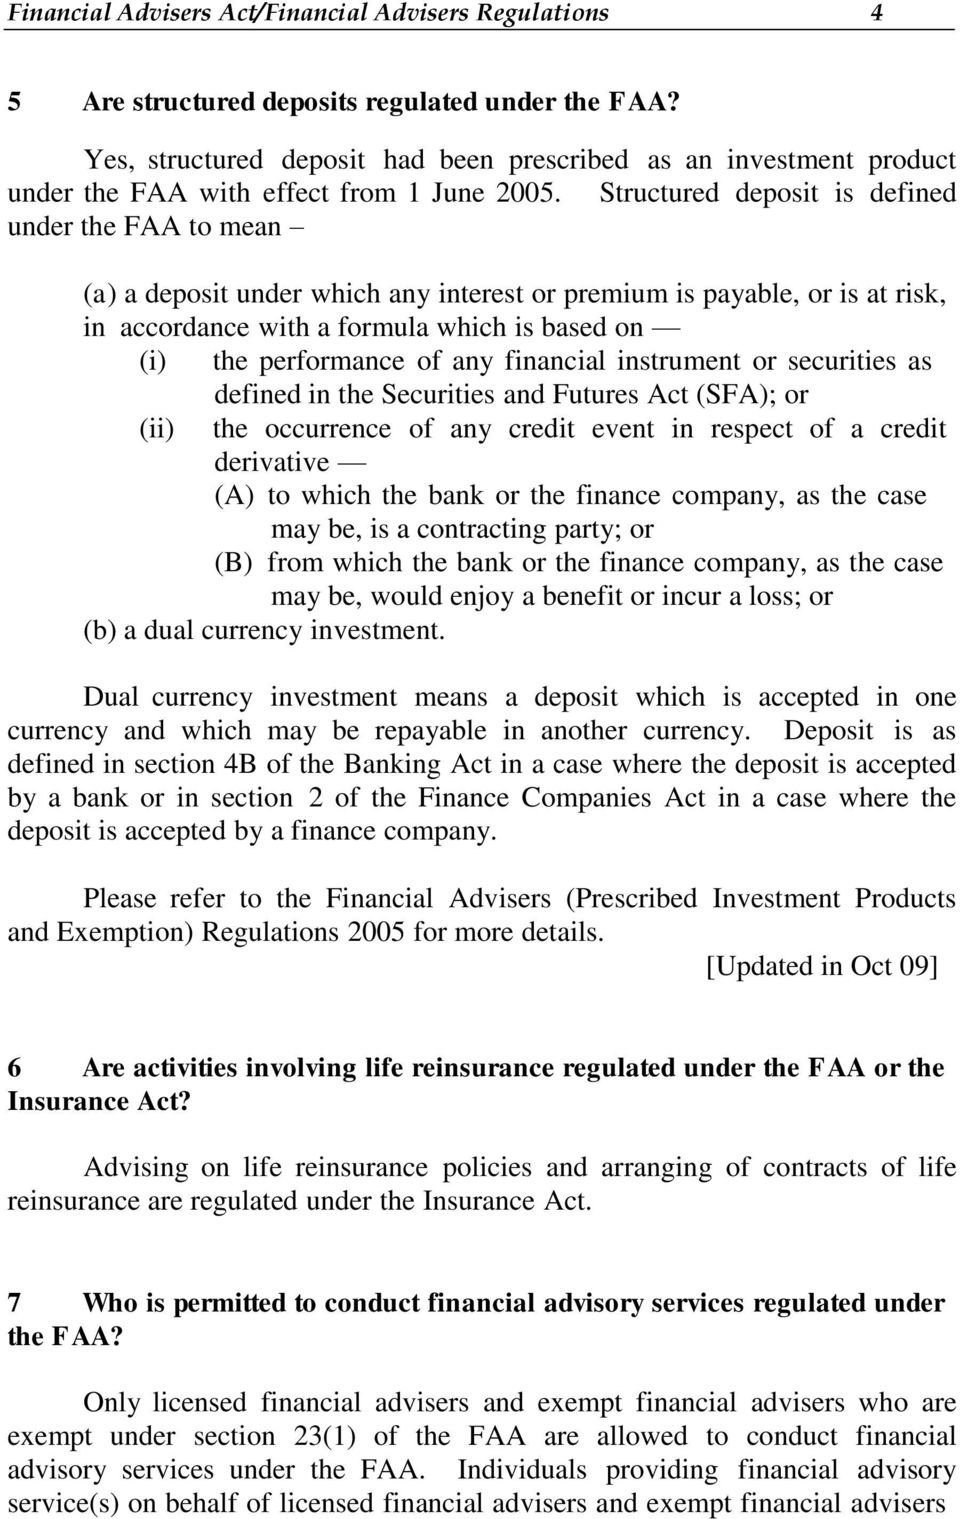 Structured deposit is defined under the FAA to mean (a) a deposit under which any interest or premium is payable, or is at risk, in accordance with a formula which is based on (i) the performance of